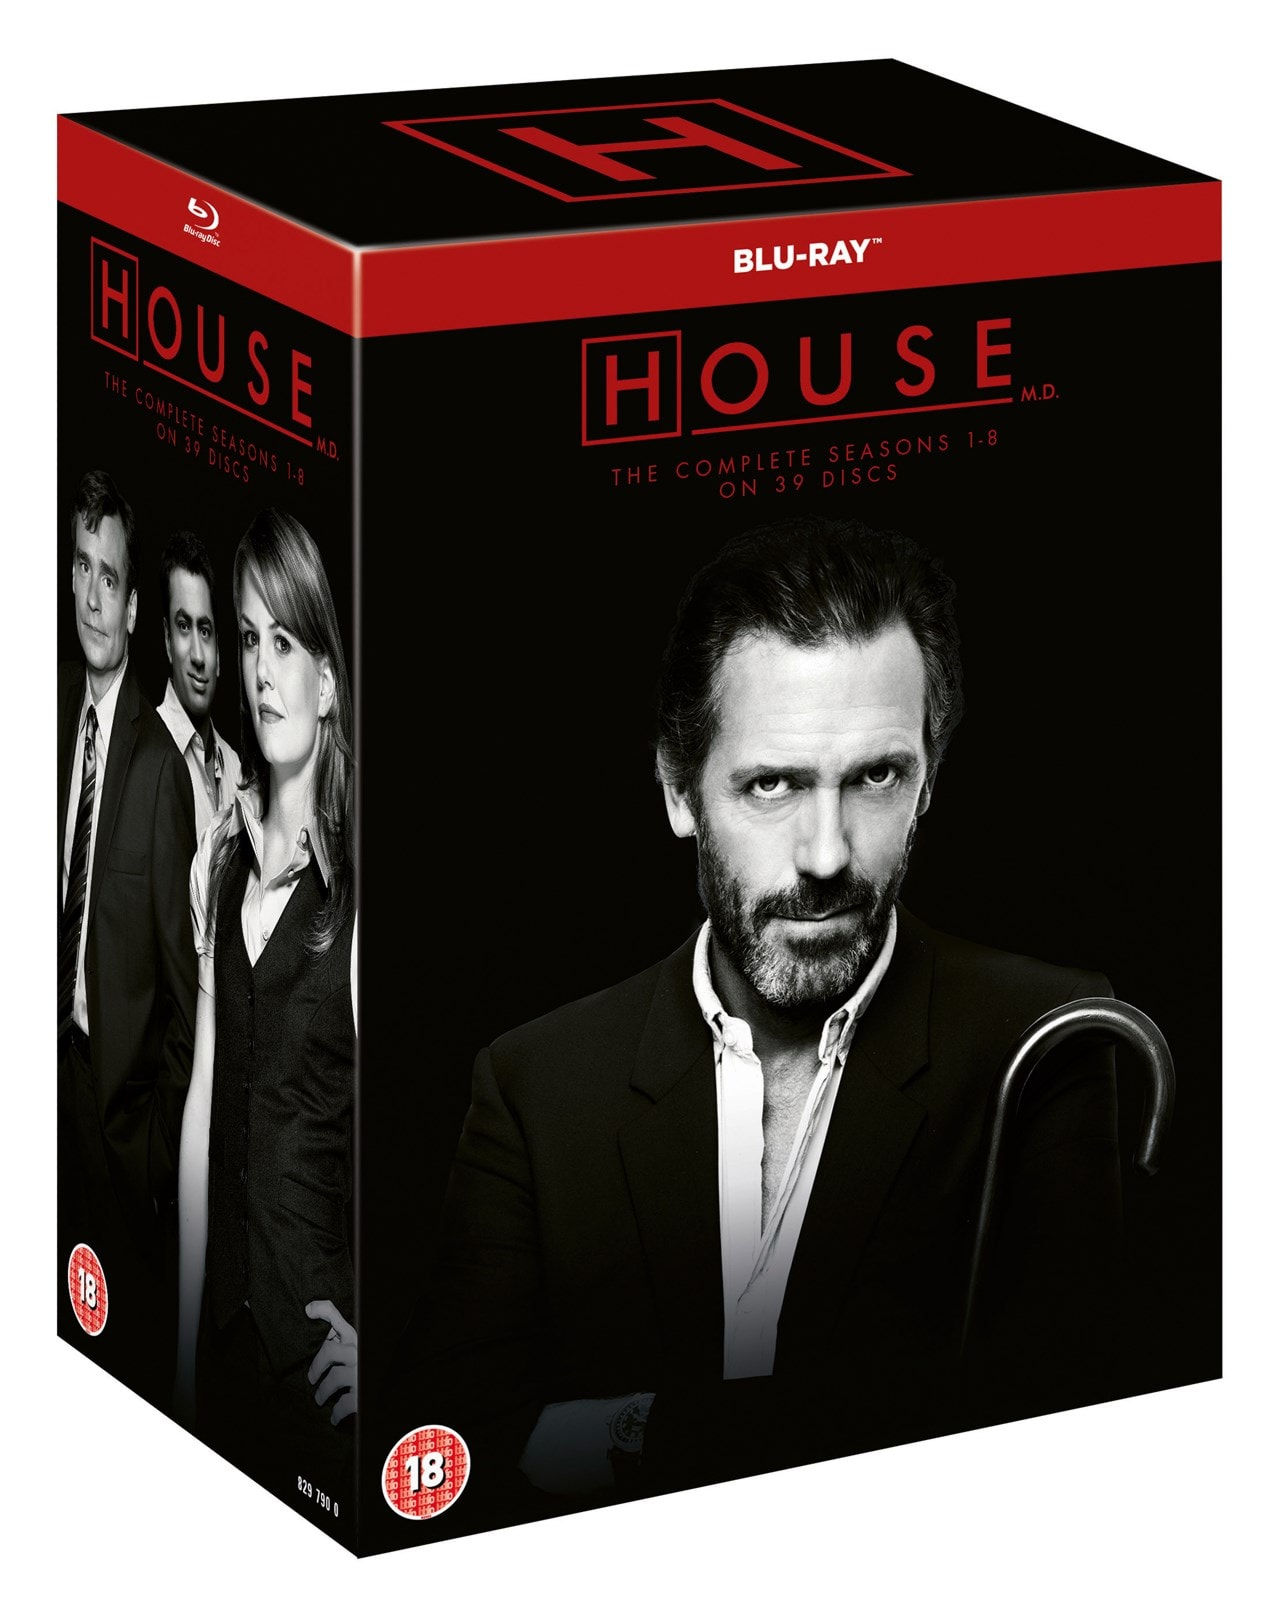 House: The Complete Seasons 1-8 - 2